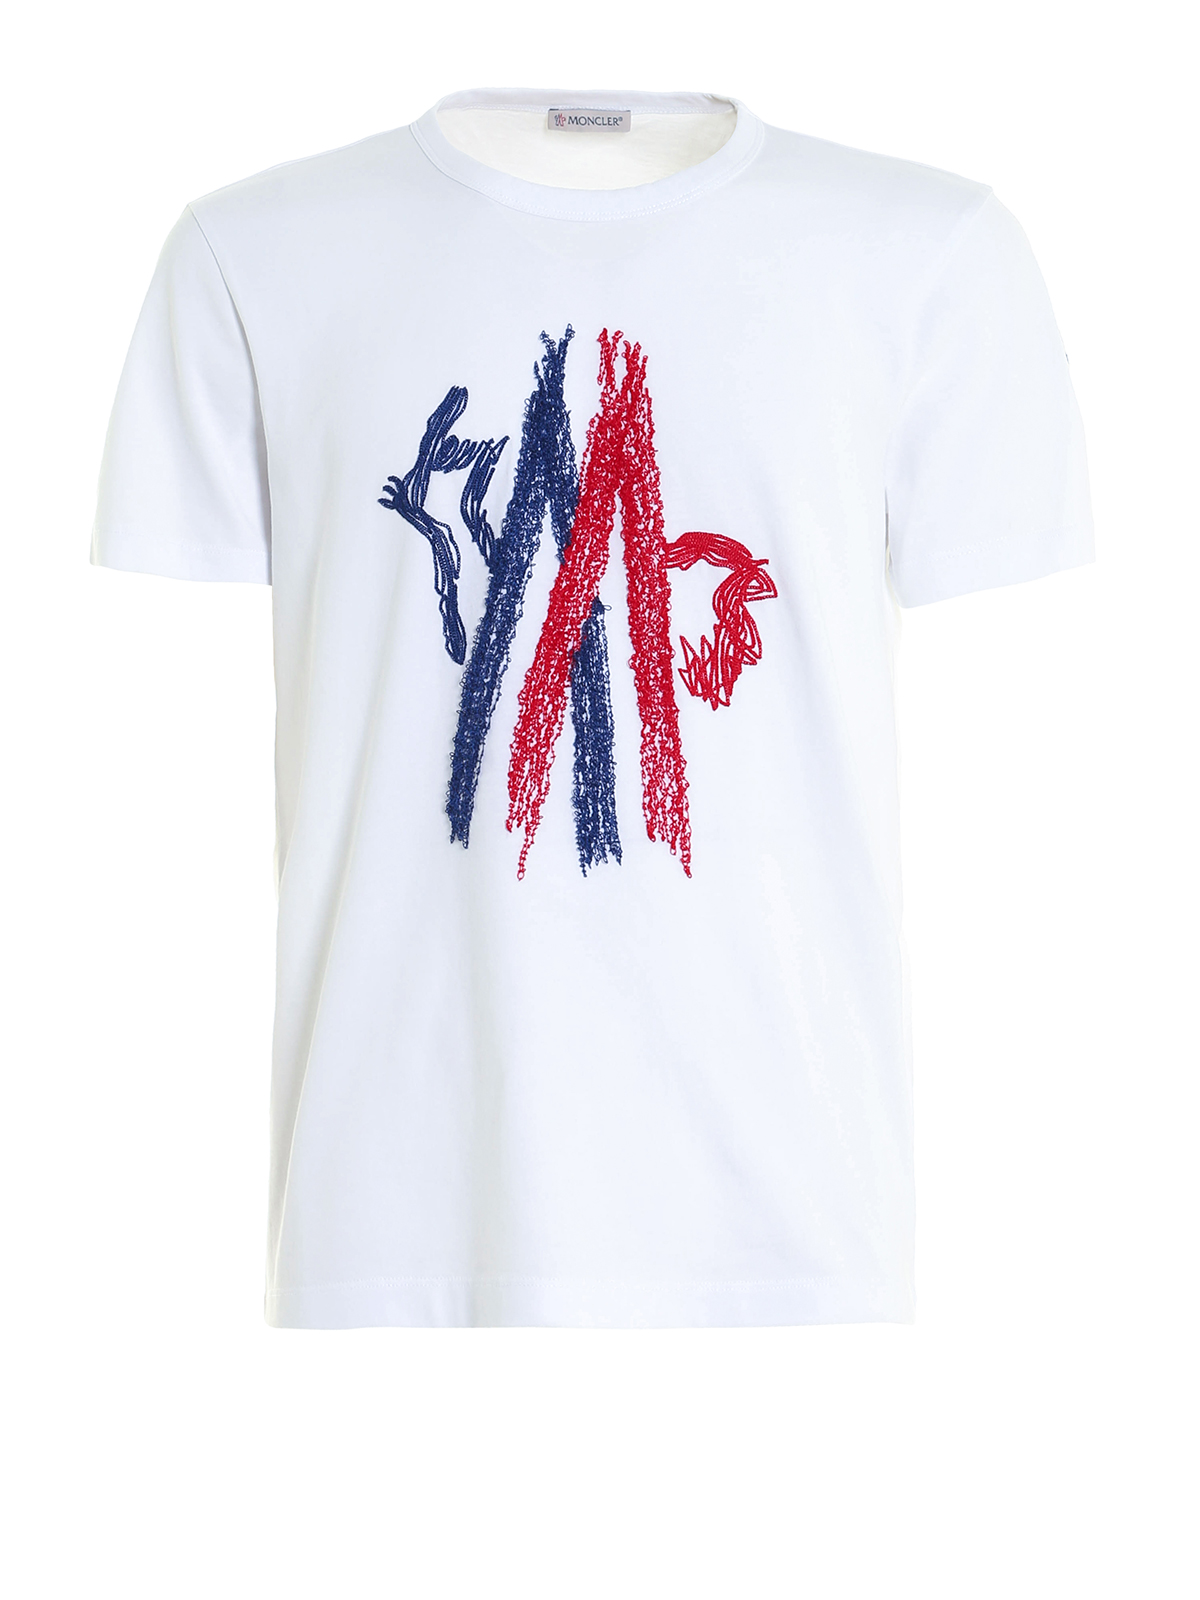 Embroidered cock logo t shirt by moncler t shirts ikrix for T shirt with embroidered logo